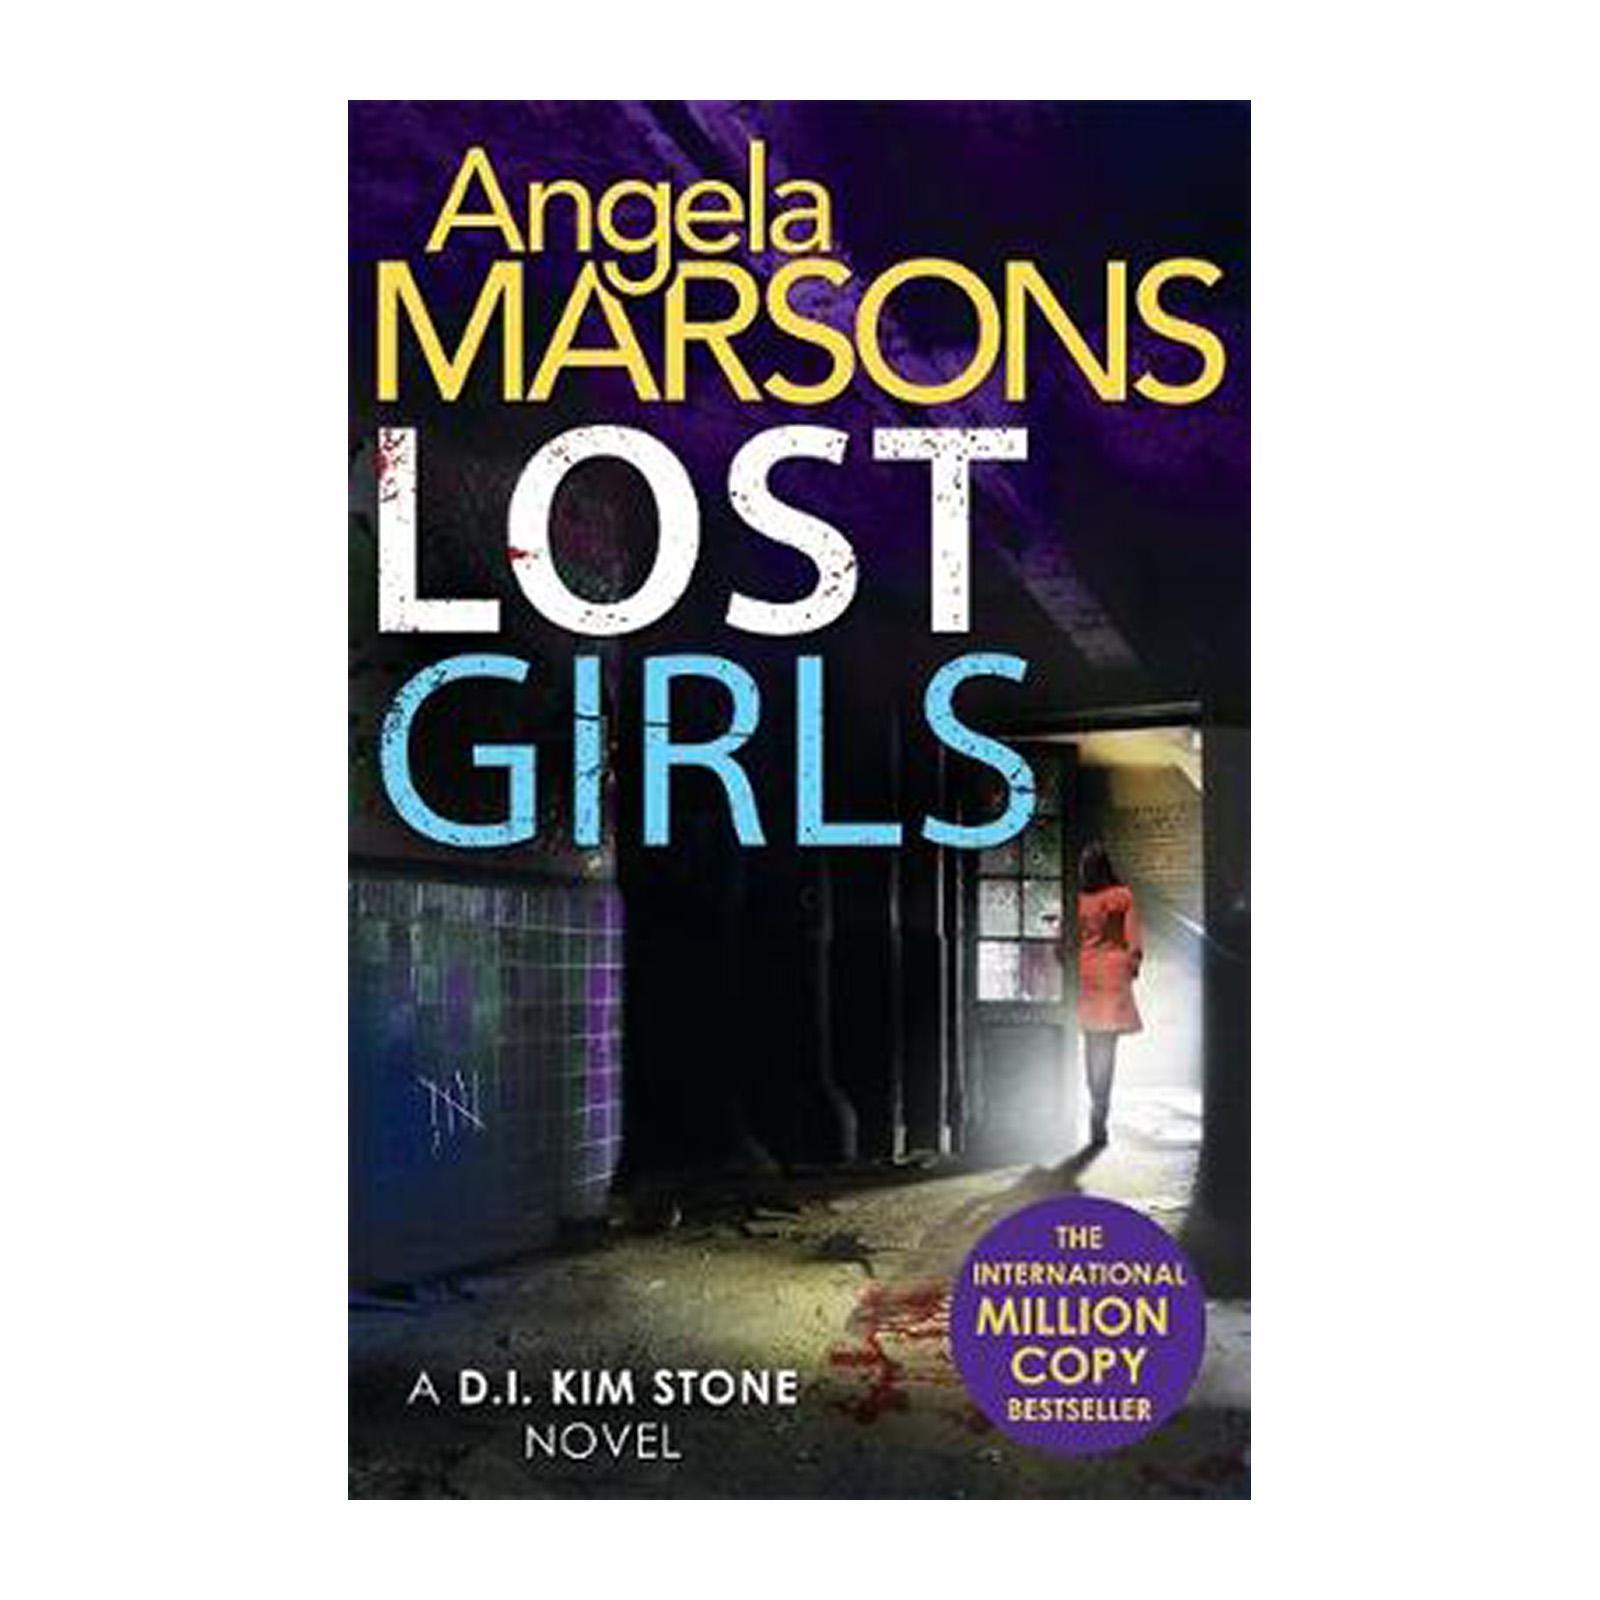 Lost Girls: A Fast Paced Gripping Thriller Novel (Paperback)